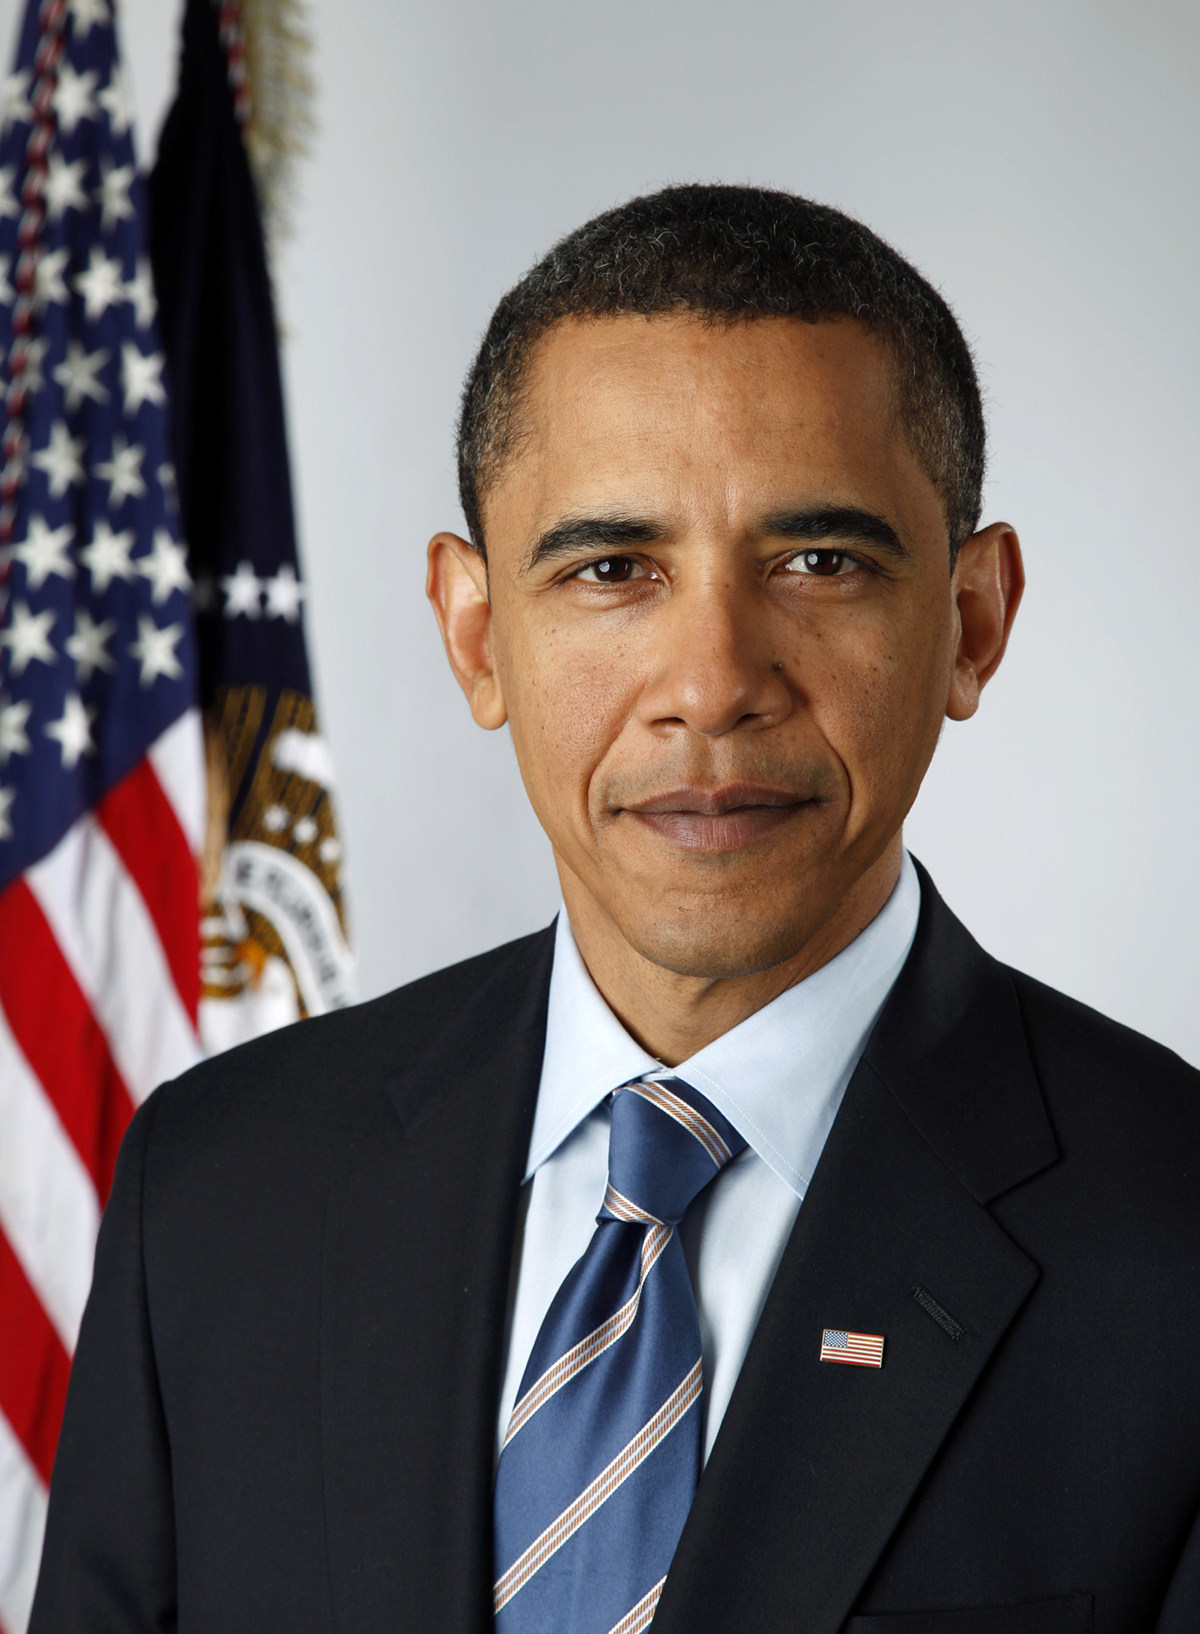 Thumbnail image for obama.jpeg